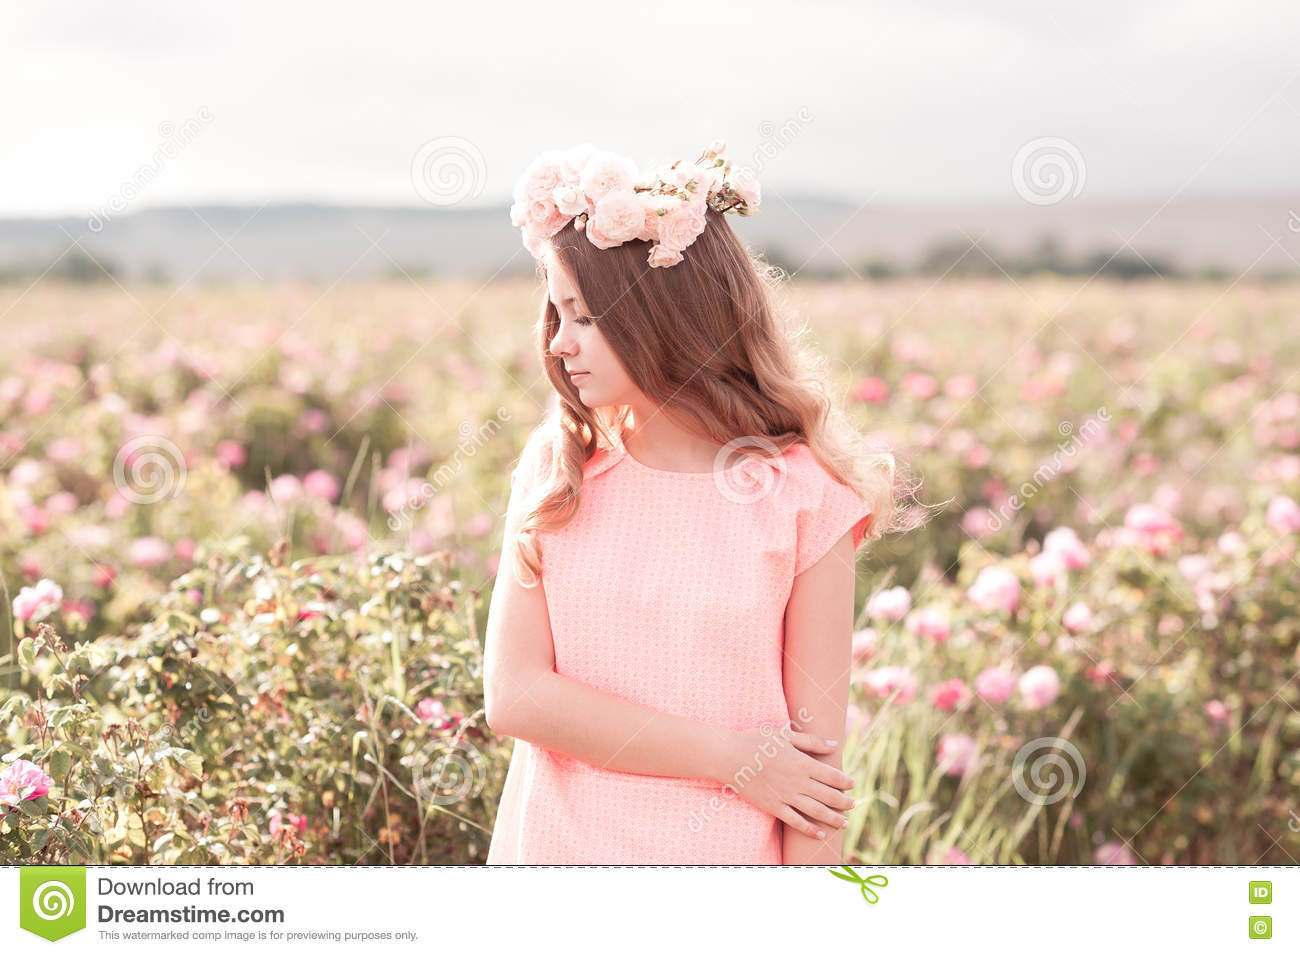 Teenage girl standing in rose garden